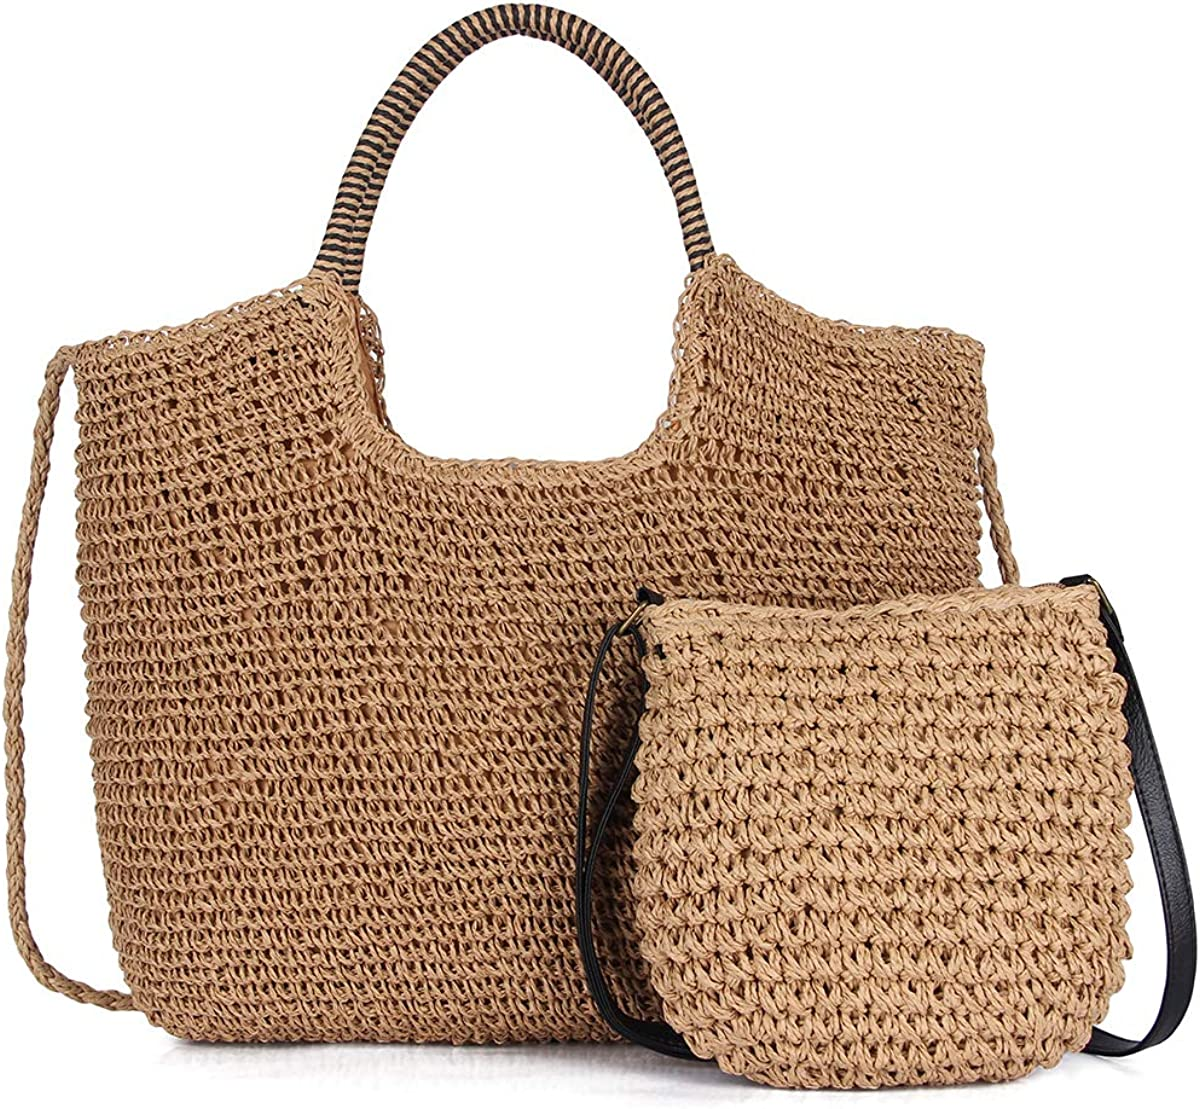 Angel Barcelo Hand-Woven Straw Large Hobo Bag for Women Round Handle Ring Toto Retro Summer Beach Straw Bag with a Clutch Bag